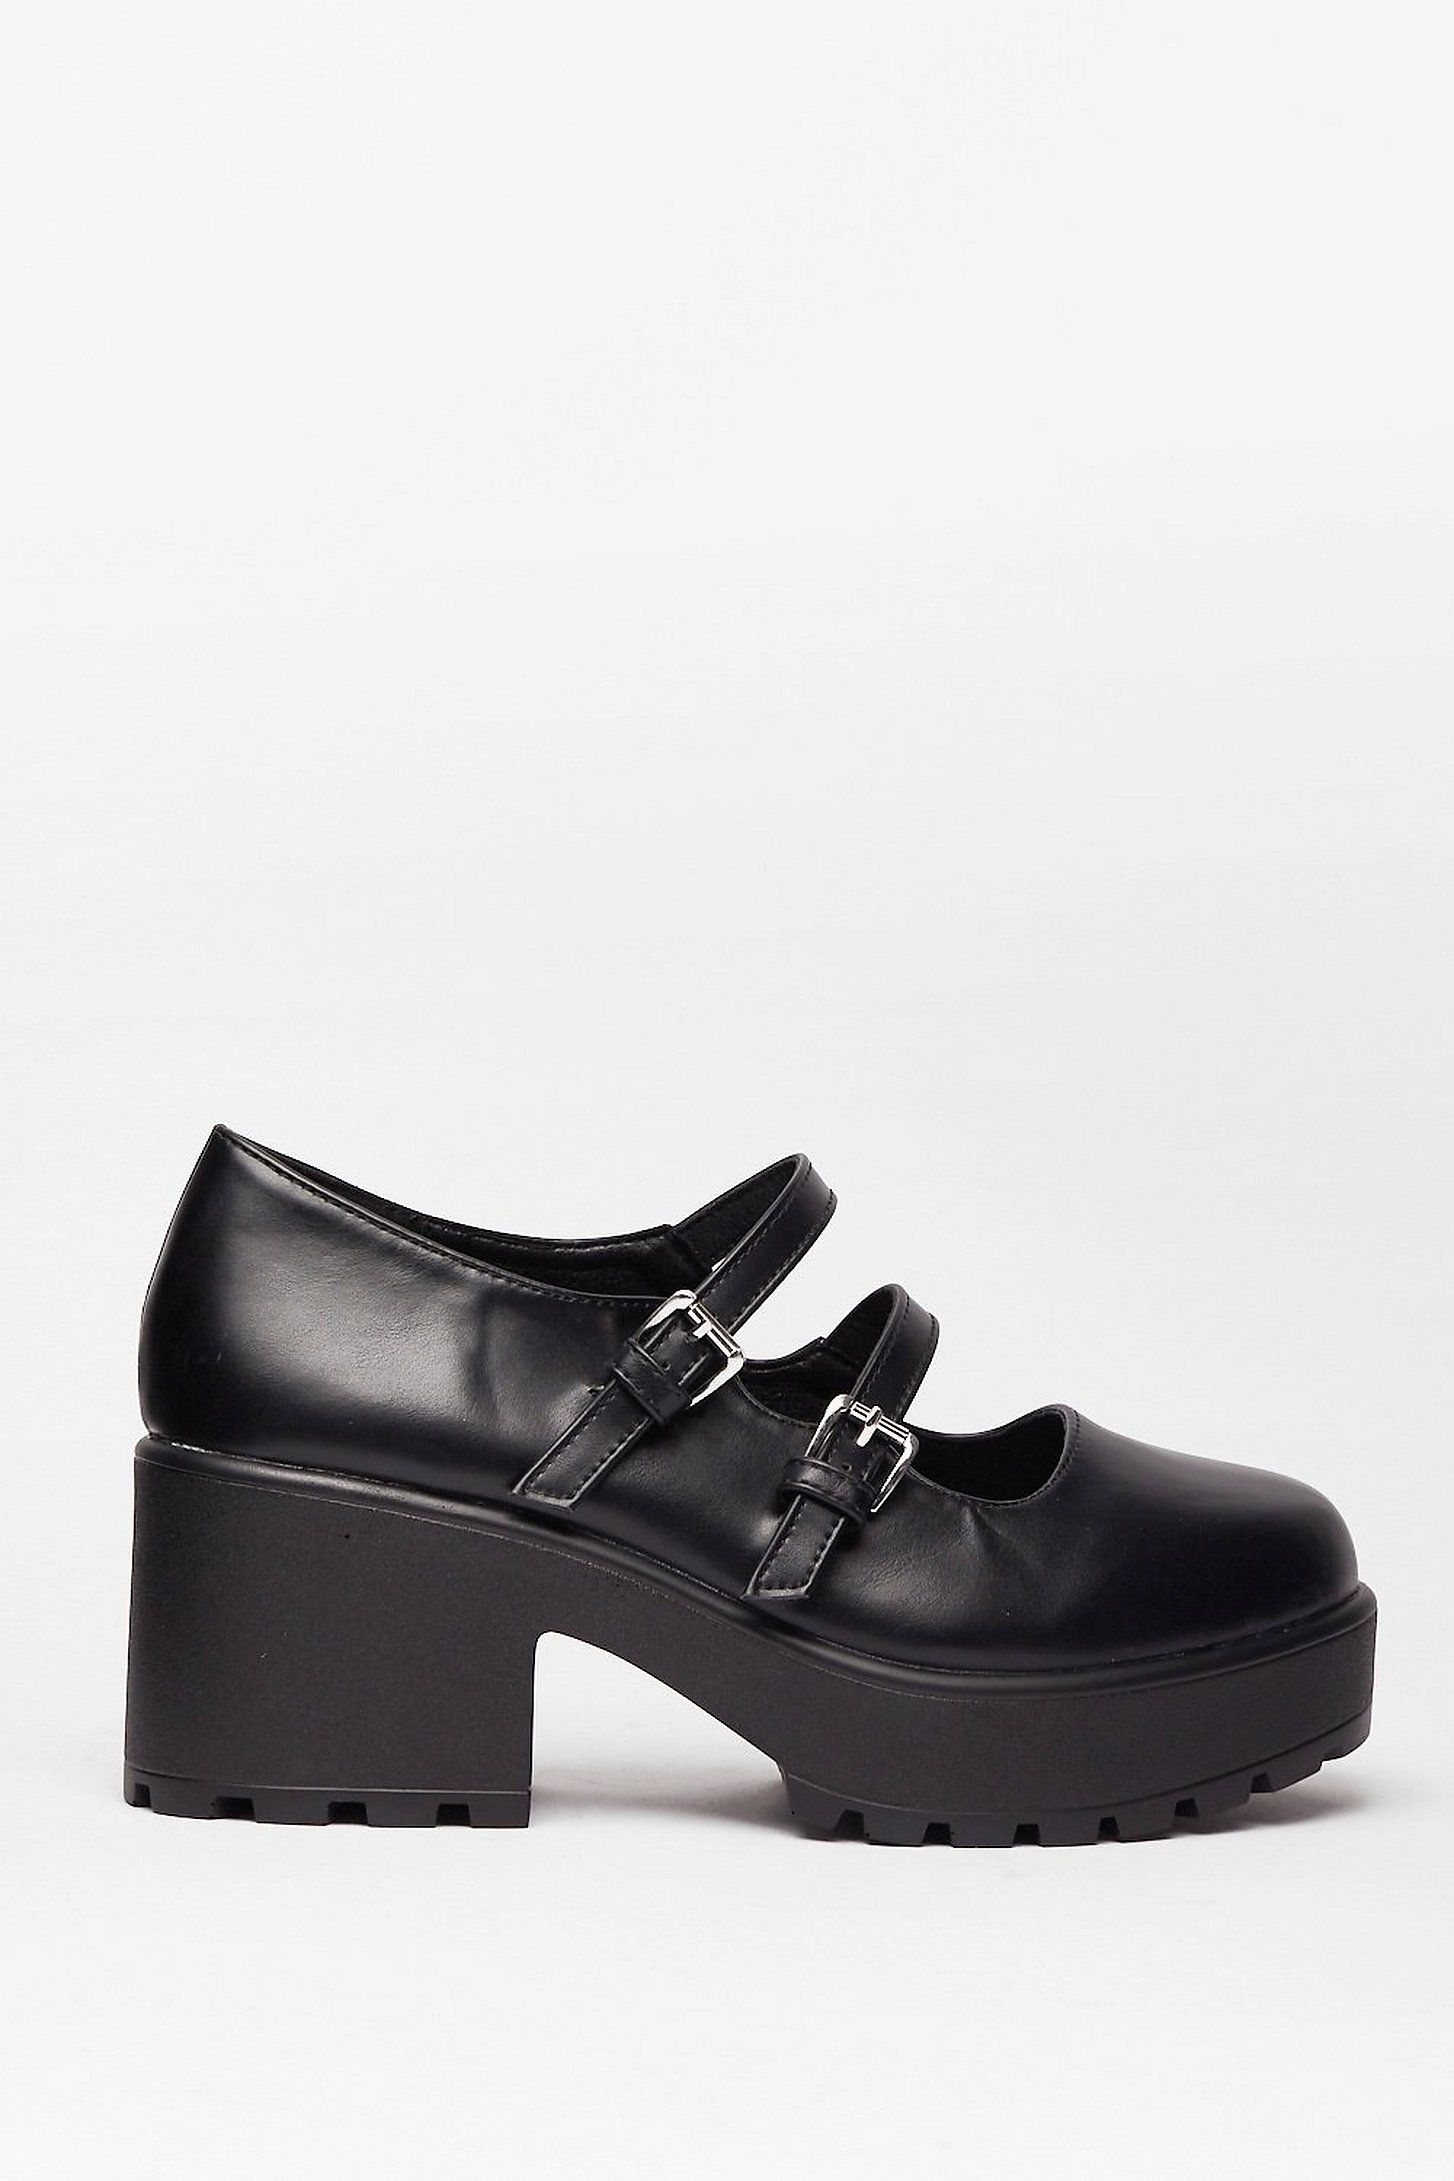 PU Double Strap Mary Janes | Nasty Gal